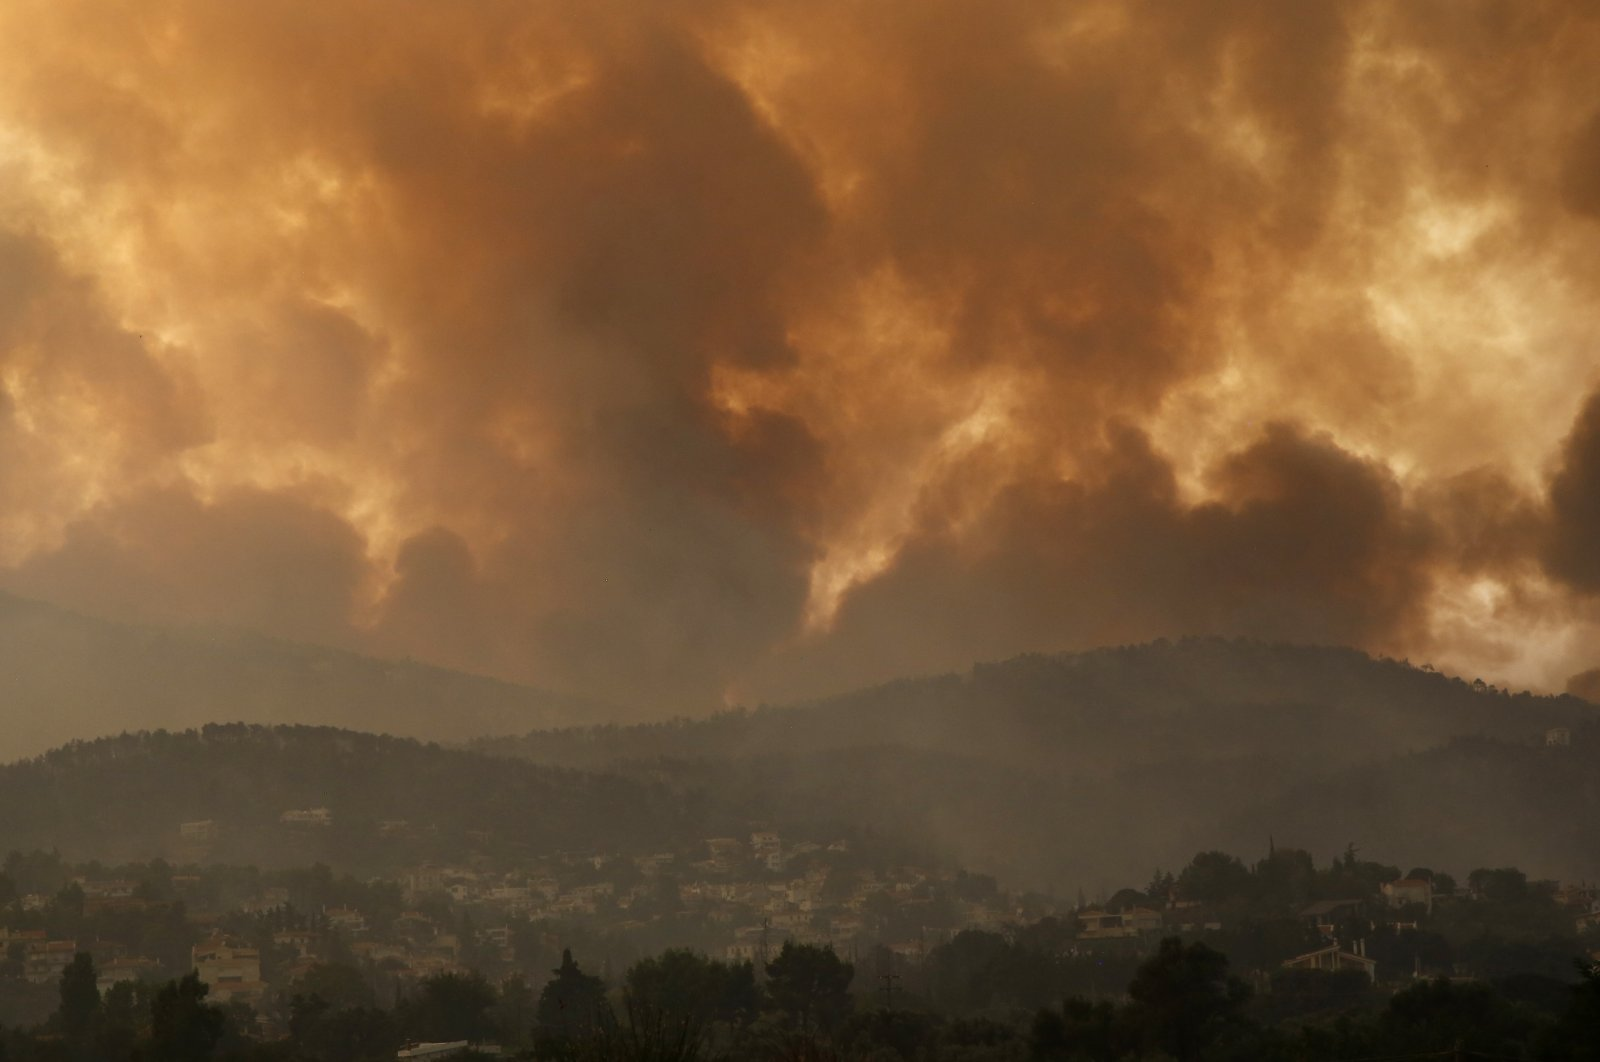 Smoke spreads over Parnitha mountain during a wildfire in the village of Ippokratios Politia, Greece, about 35 kilometres (21 miles), north of Athens, Greece, Aug. 6, 2021. (AP Photo)